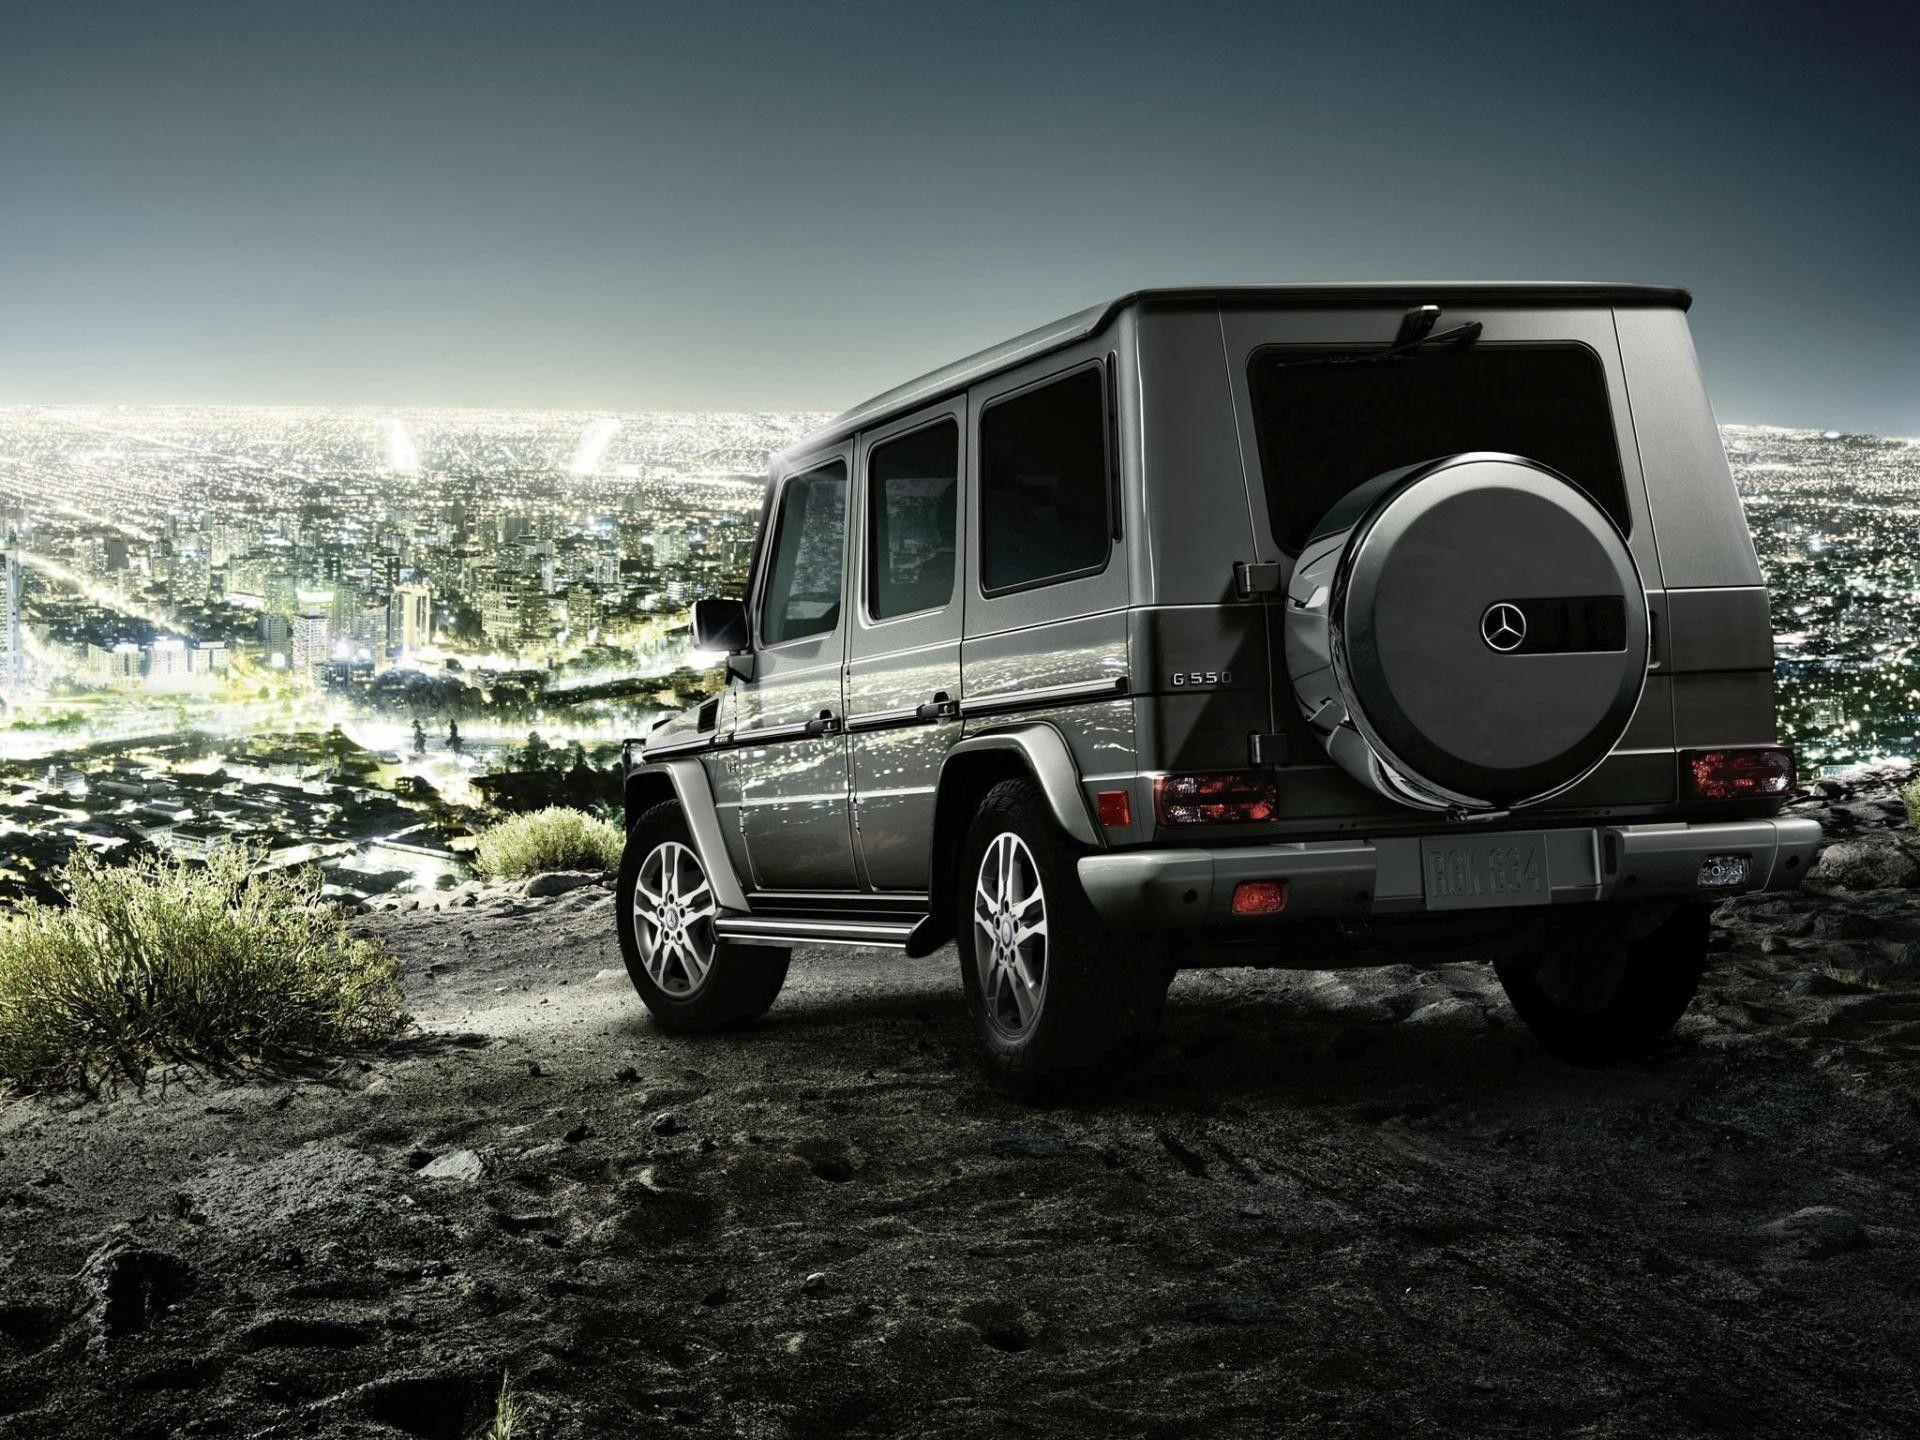 Mercedes Benz G Class Wallpaper Pictures to Pin on Pinterest ...